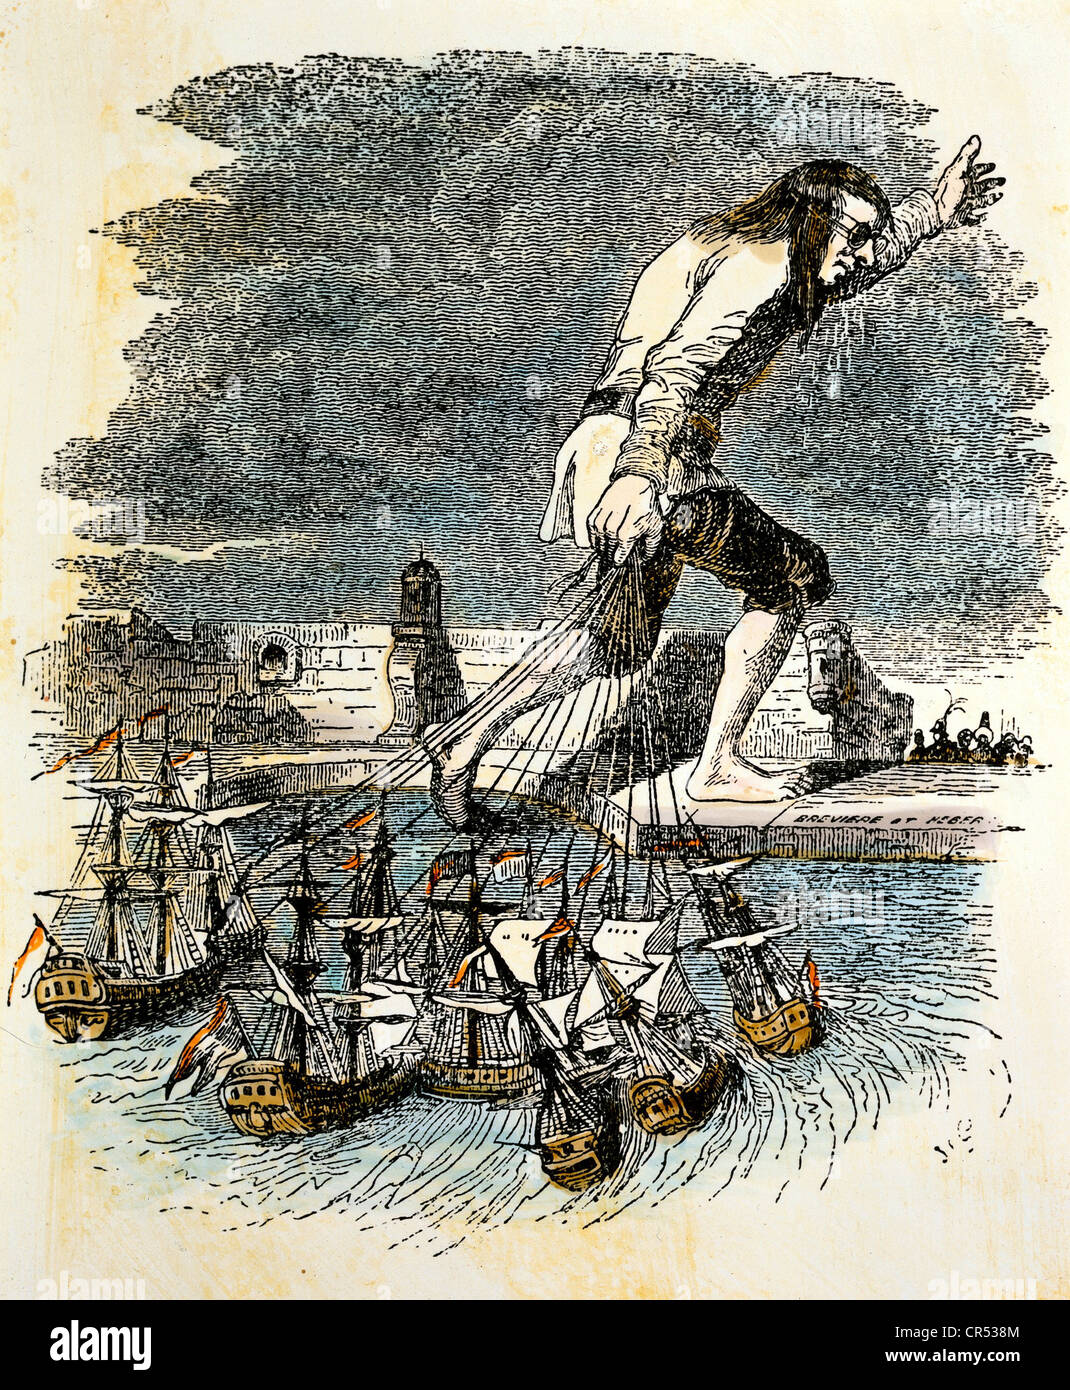 swifts main purpose in writing gullivers travels was to